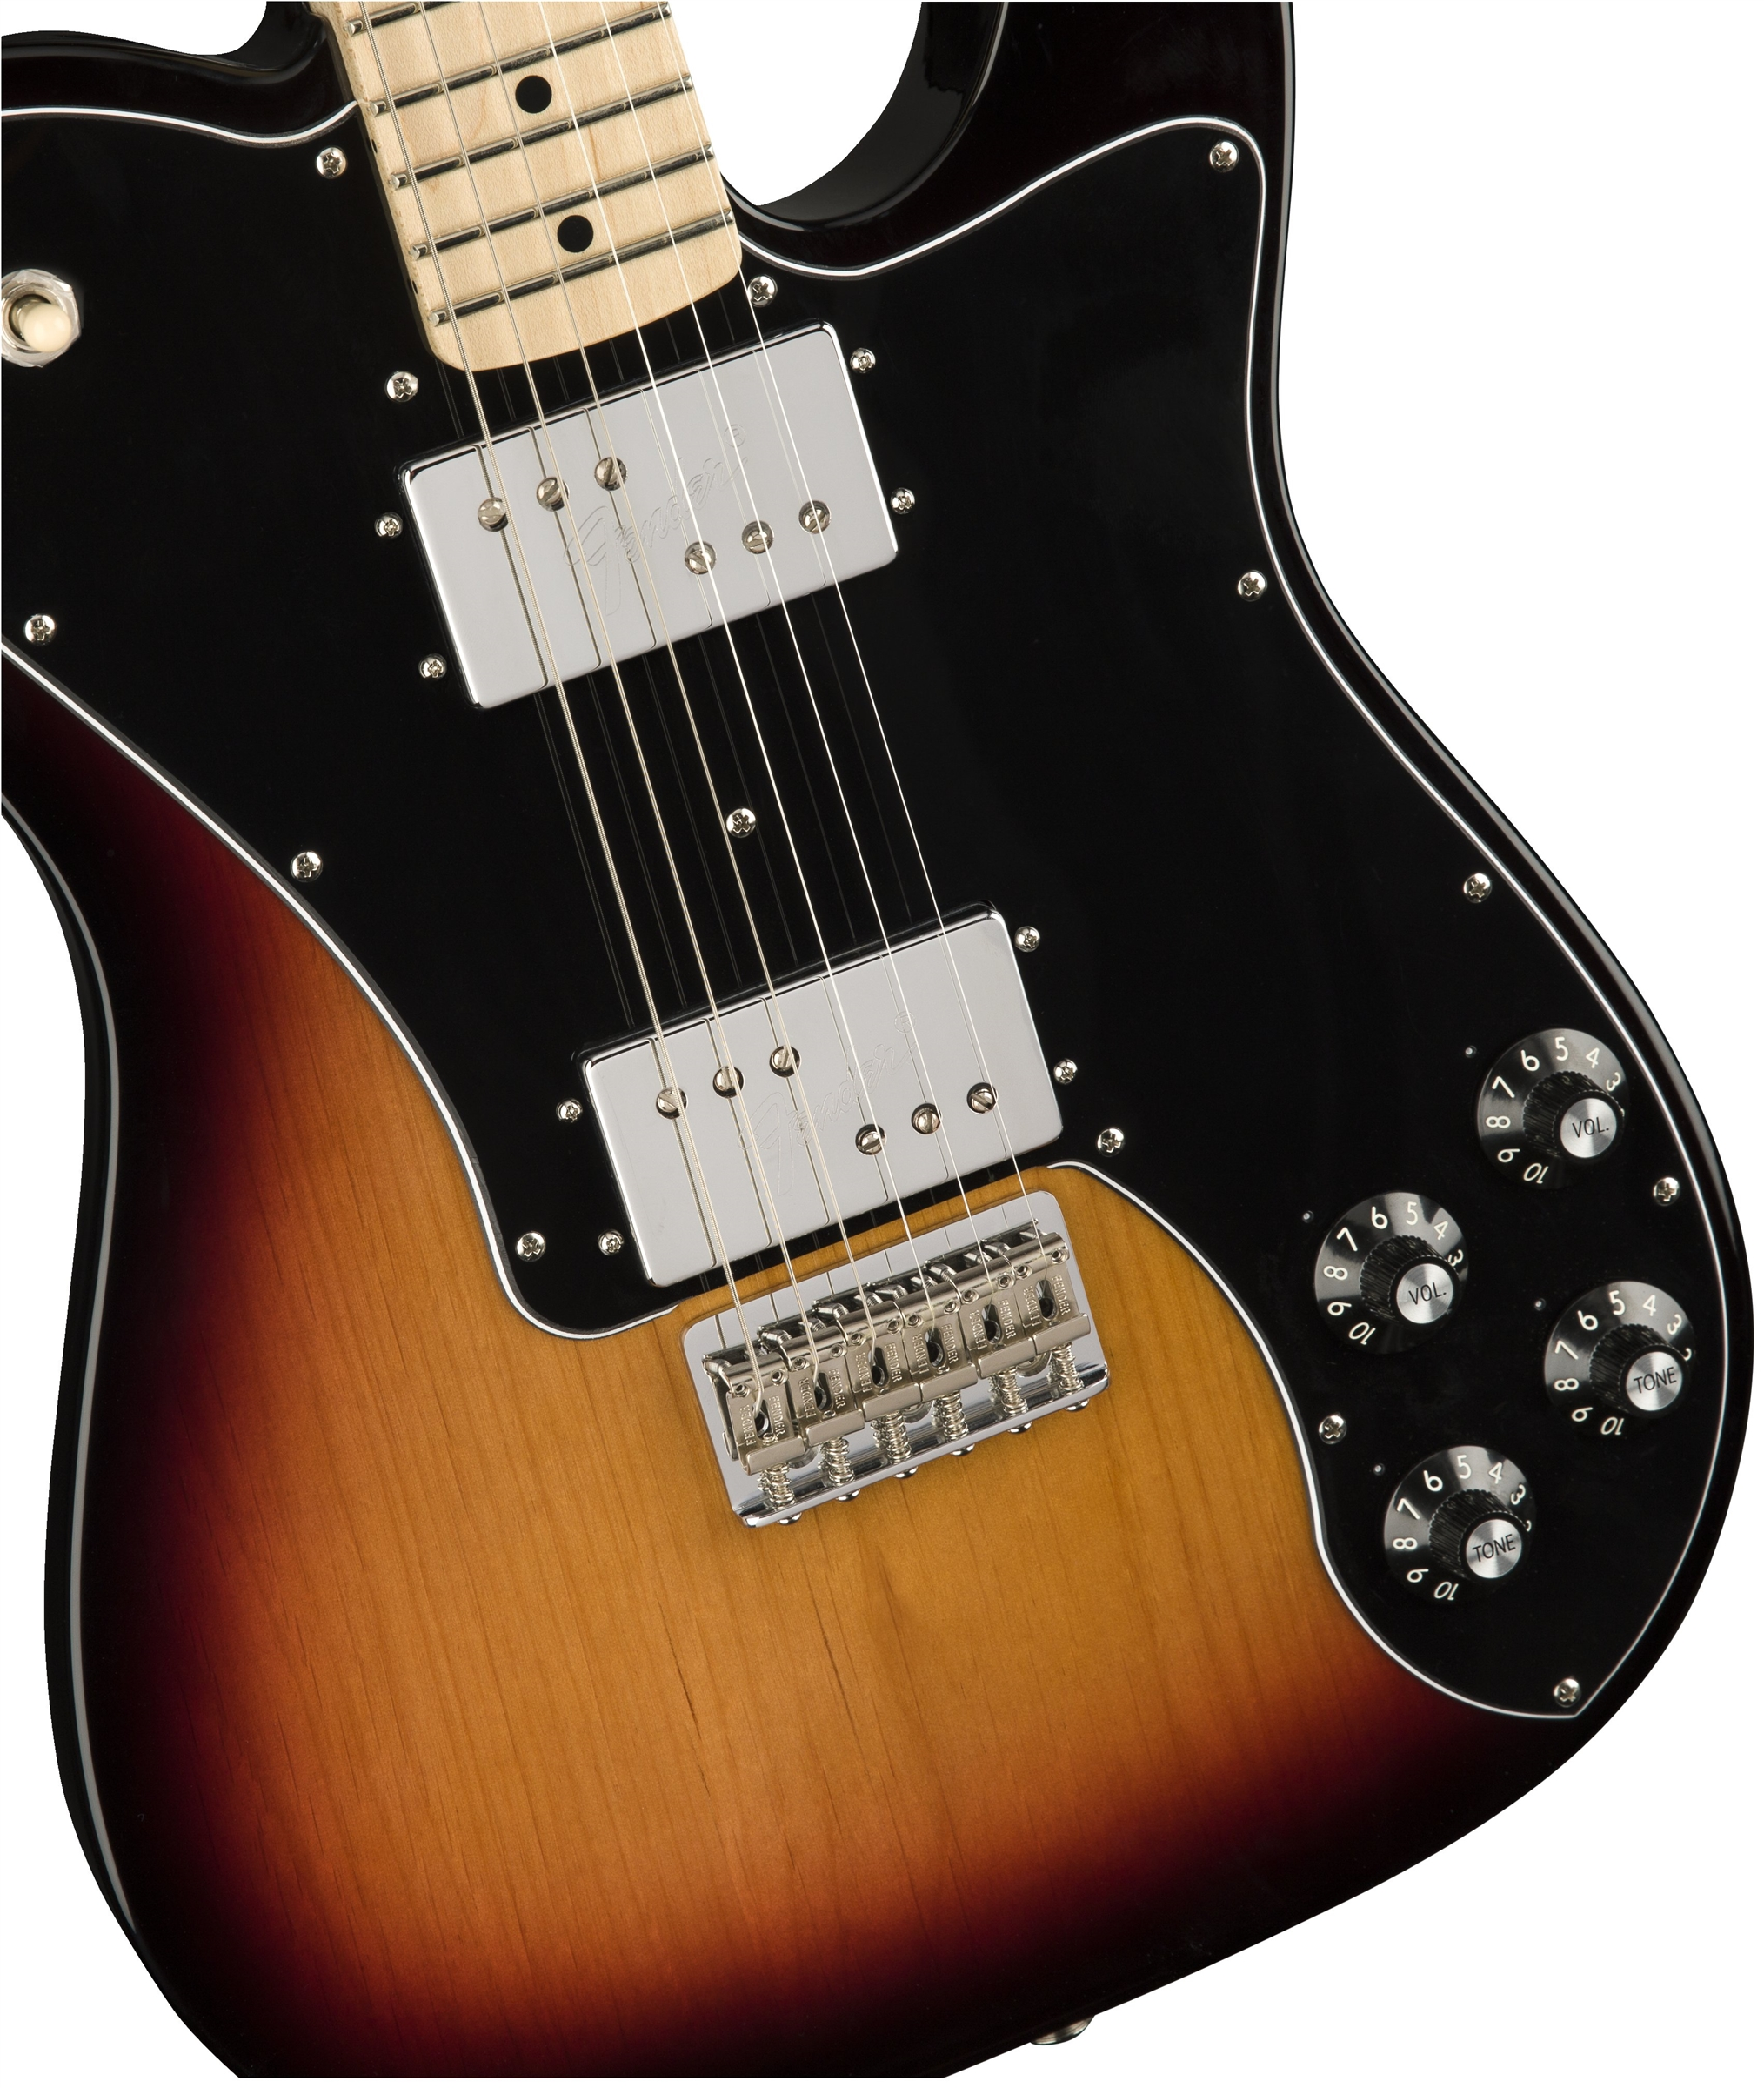 Classic Series 72 Telecaster Deluxe Electric Guitars Fender Wide Range Humbucker Wiring Diagram Tap To Expand